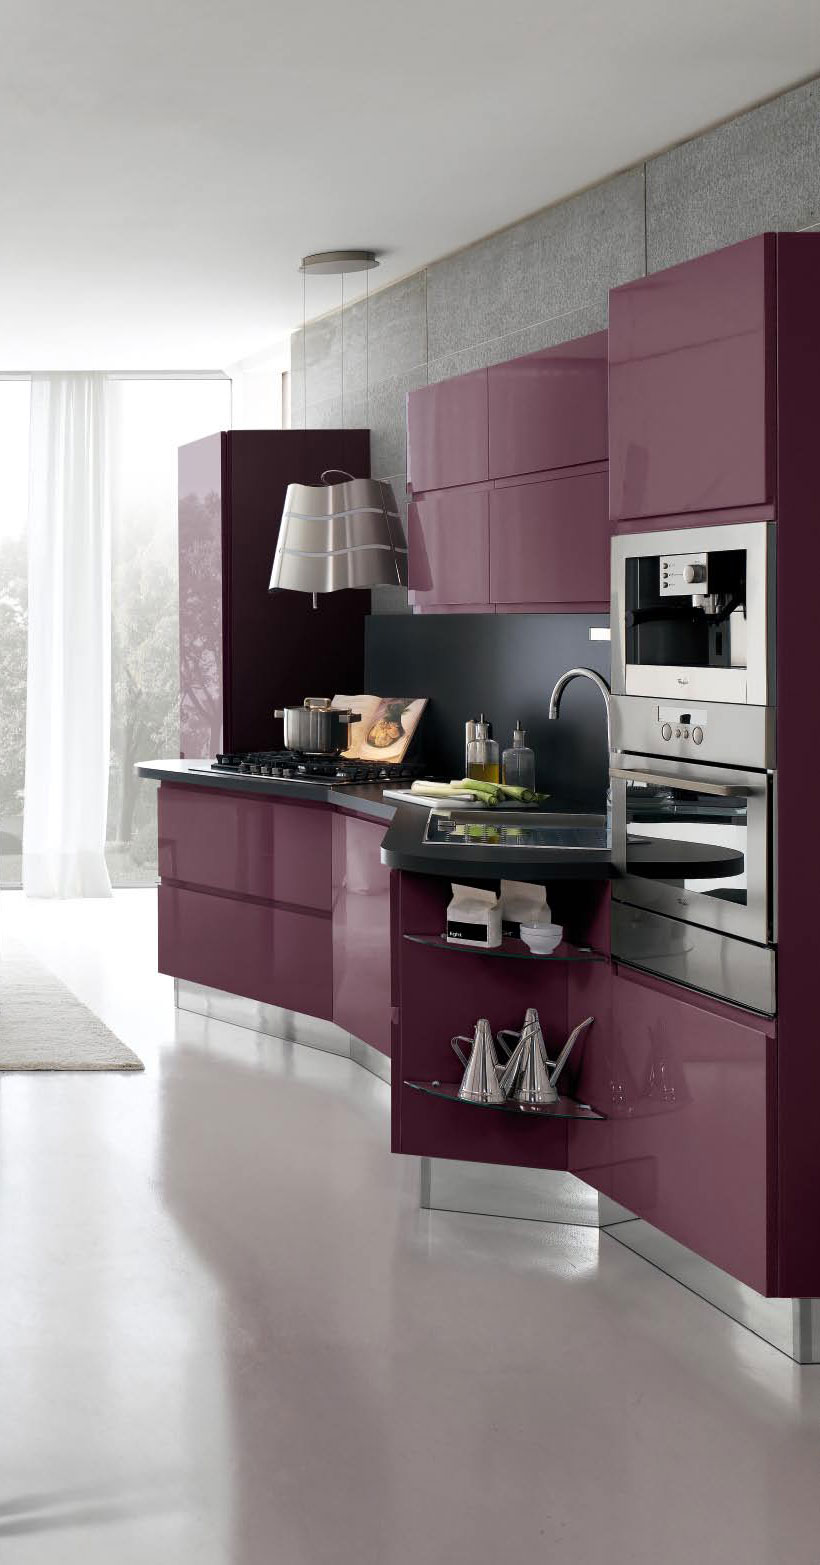 Purple Kitchen Cabinets by Stosa Image : Pictures & Photos | High ...